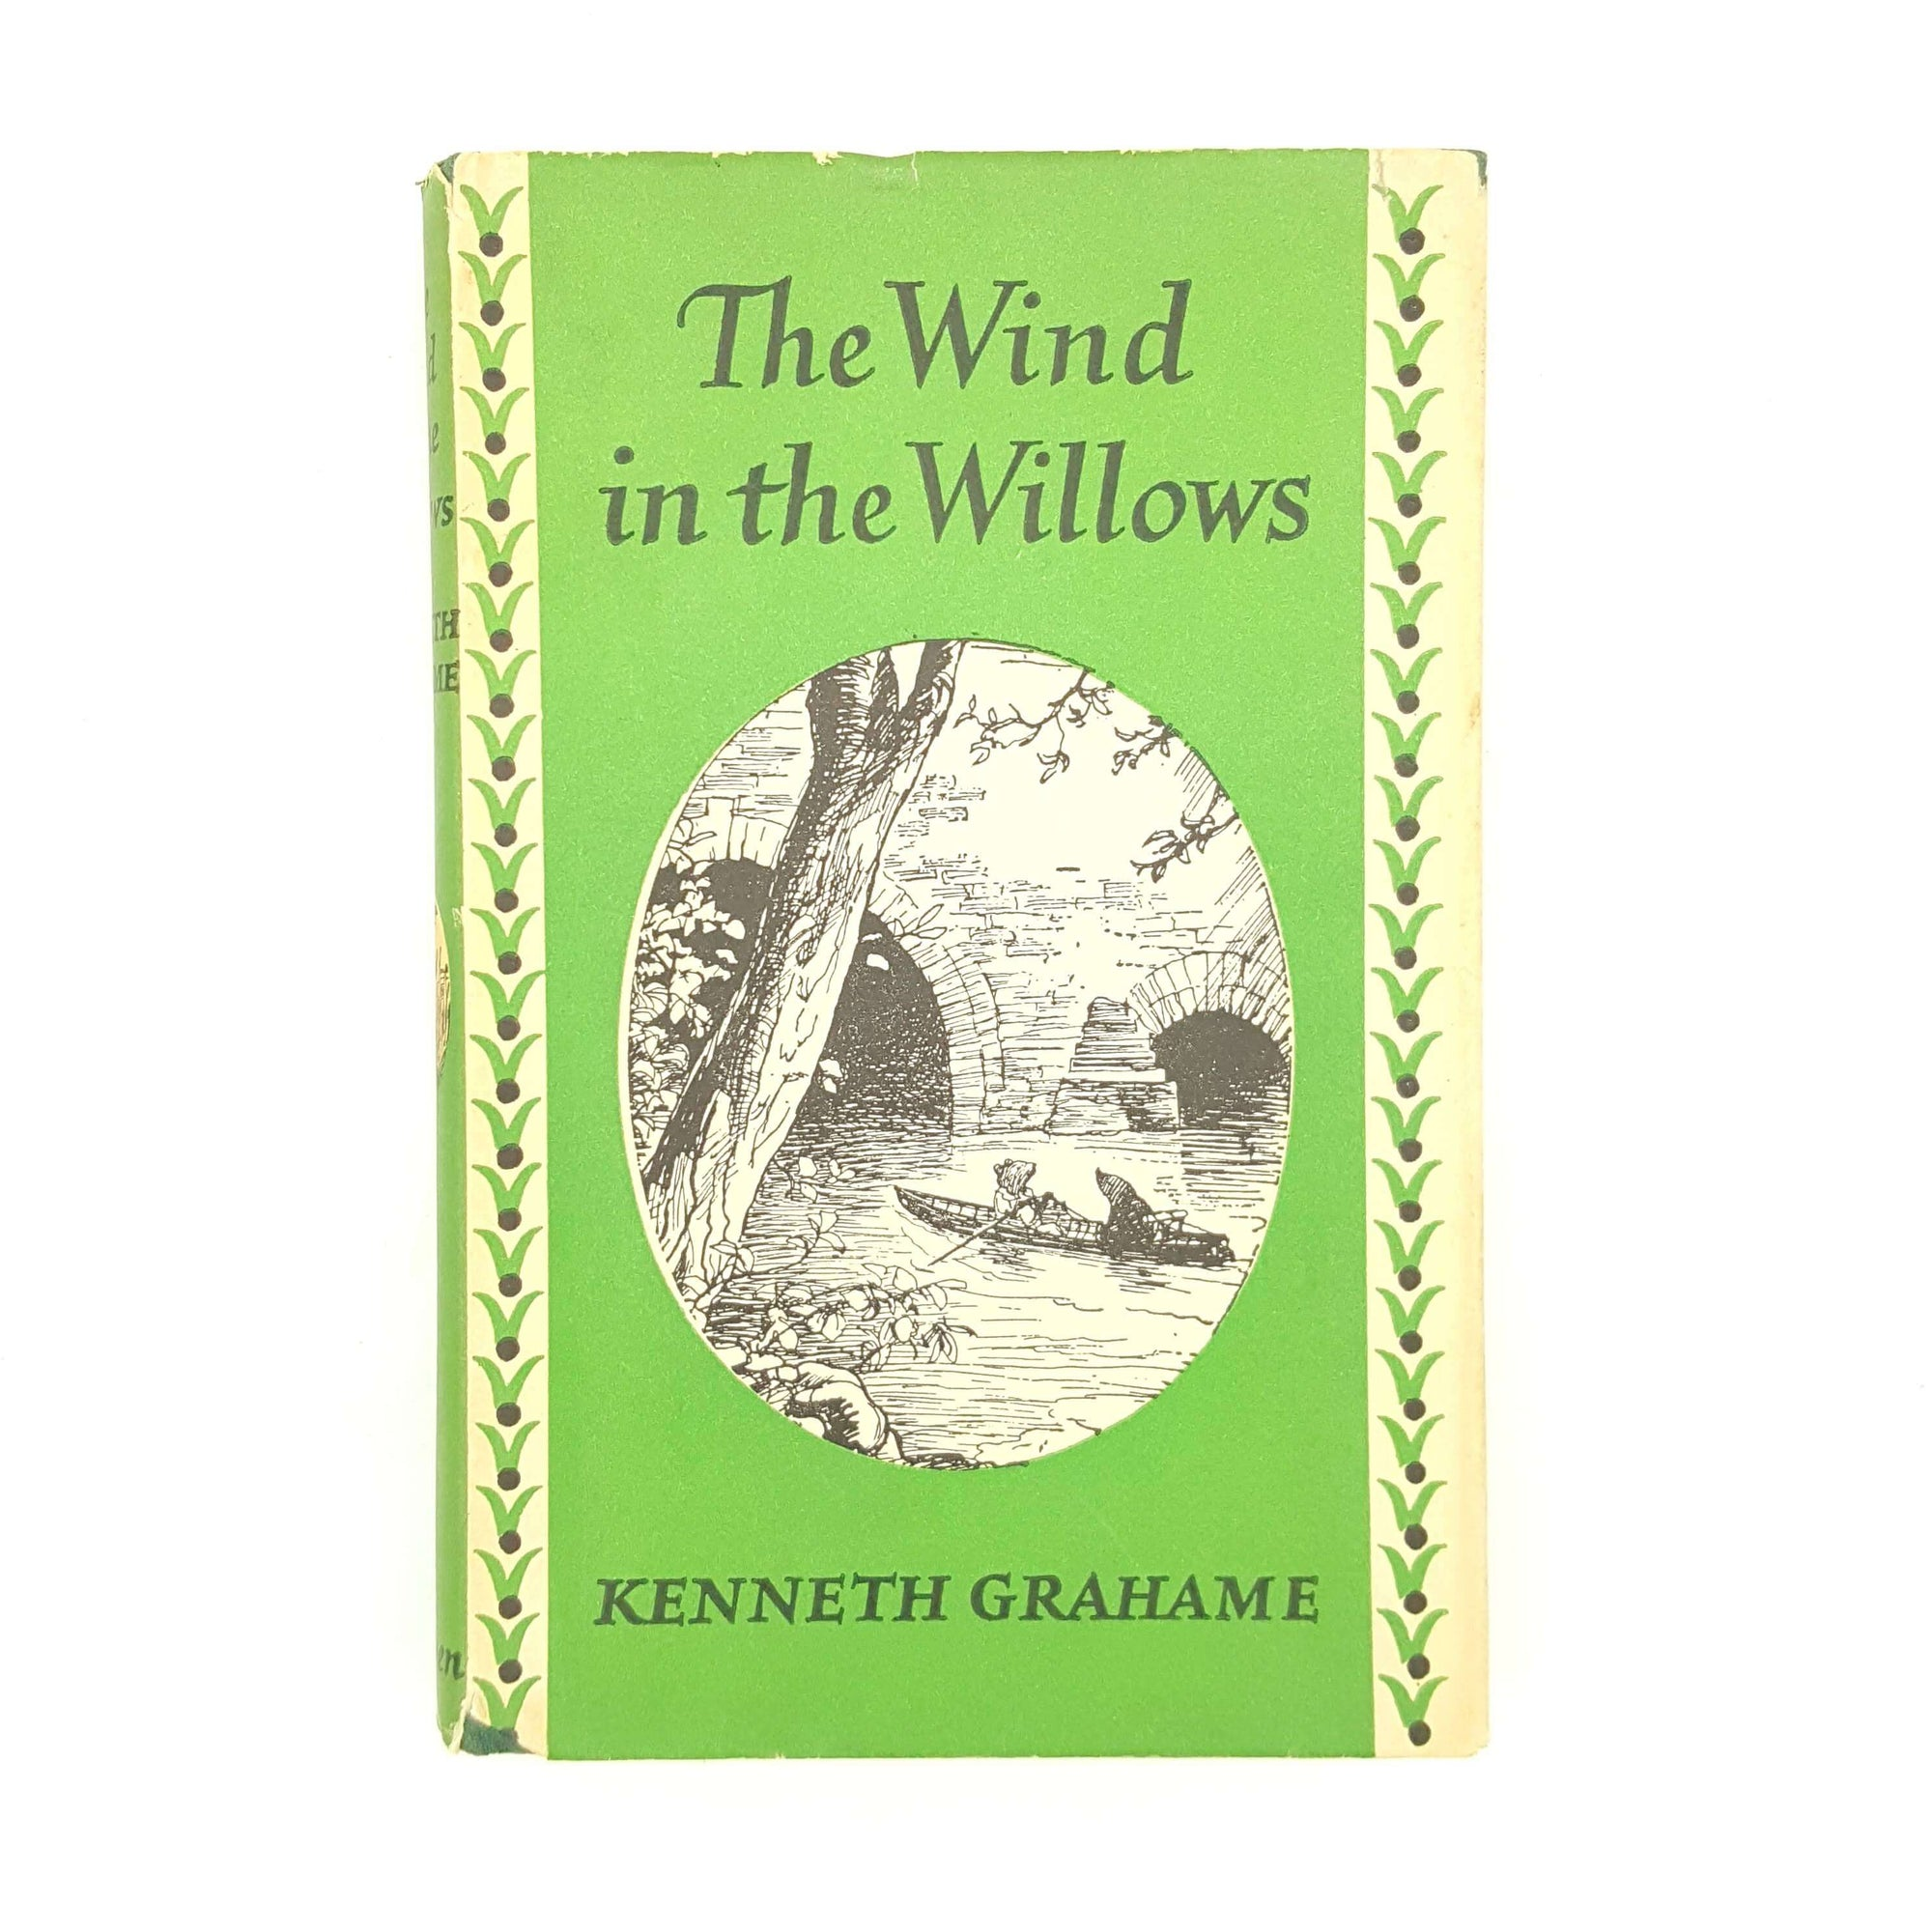 The Wind in the Willows by Kenneth Grahame 1961 Methuen Country House Library